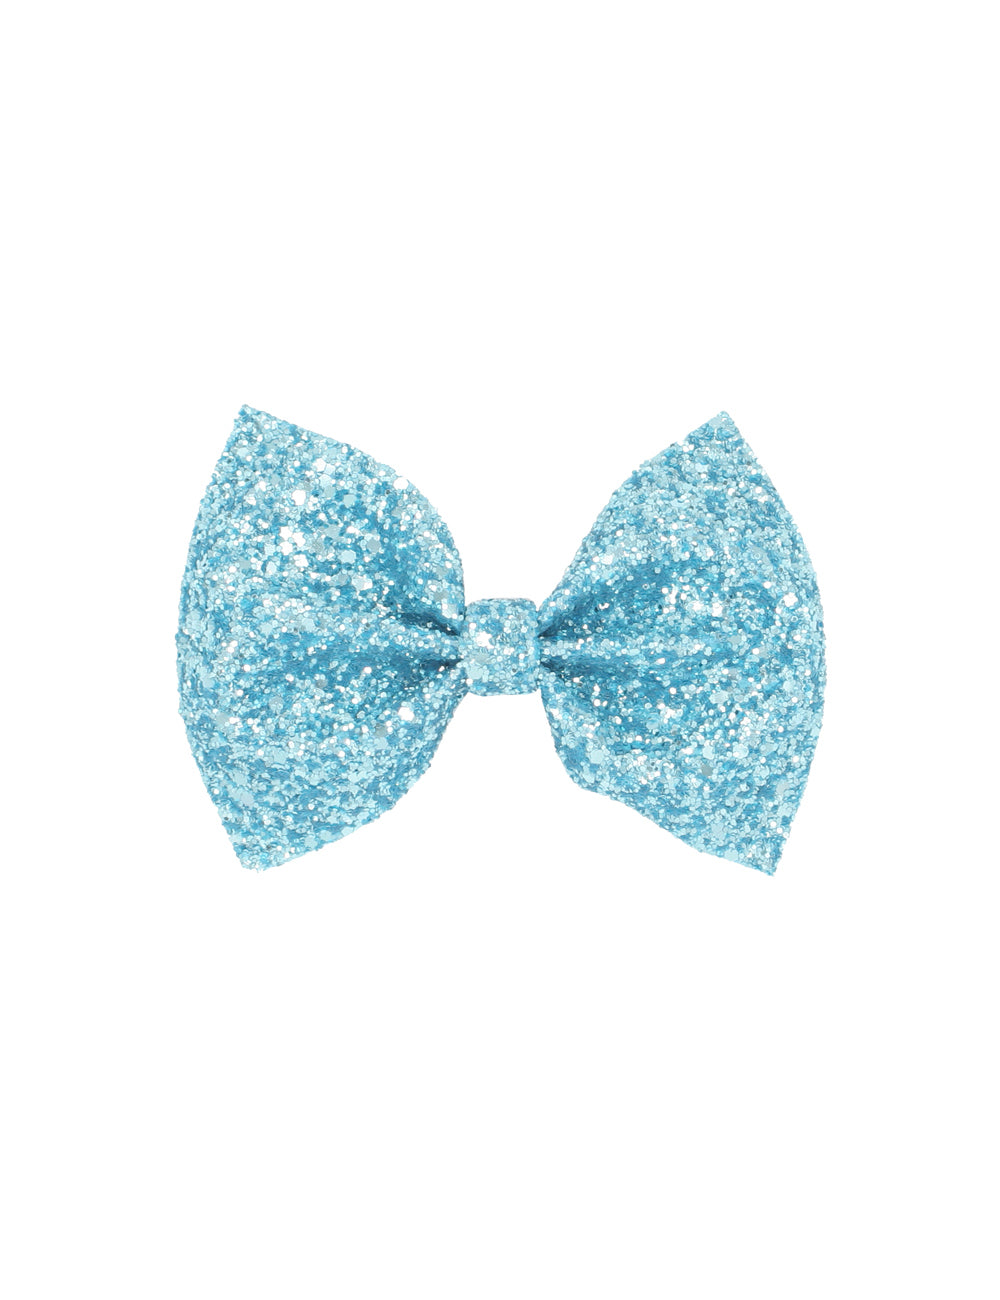 Glitter Bow Tie | Ice Blue